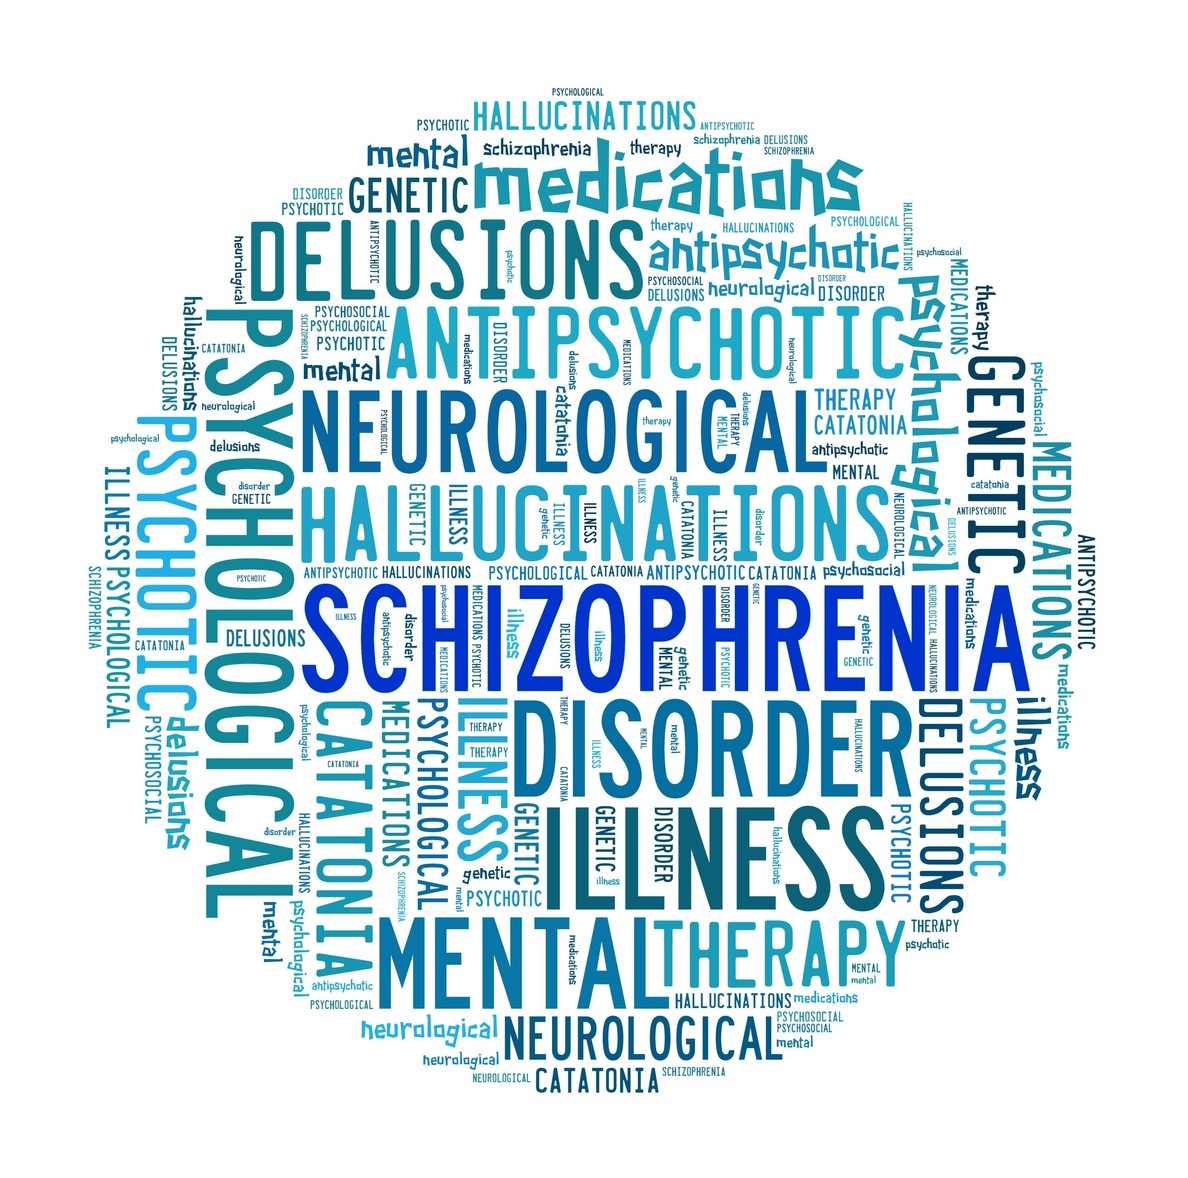 image showing the confusion of schizophrenia